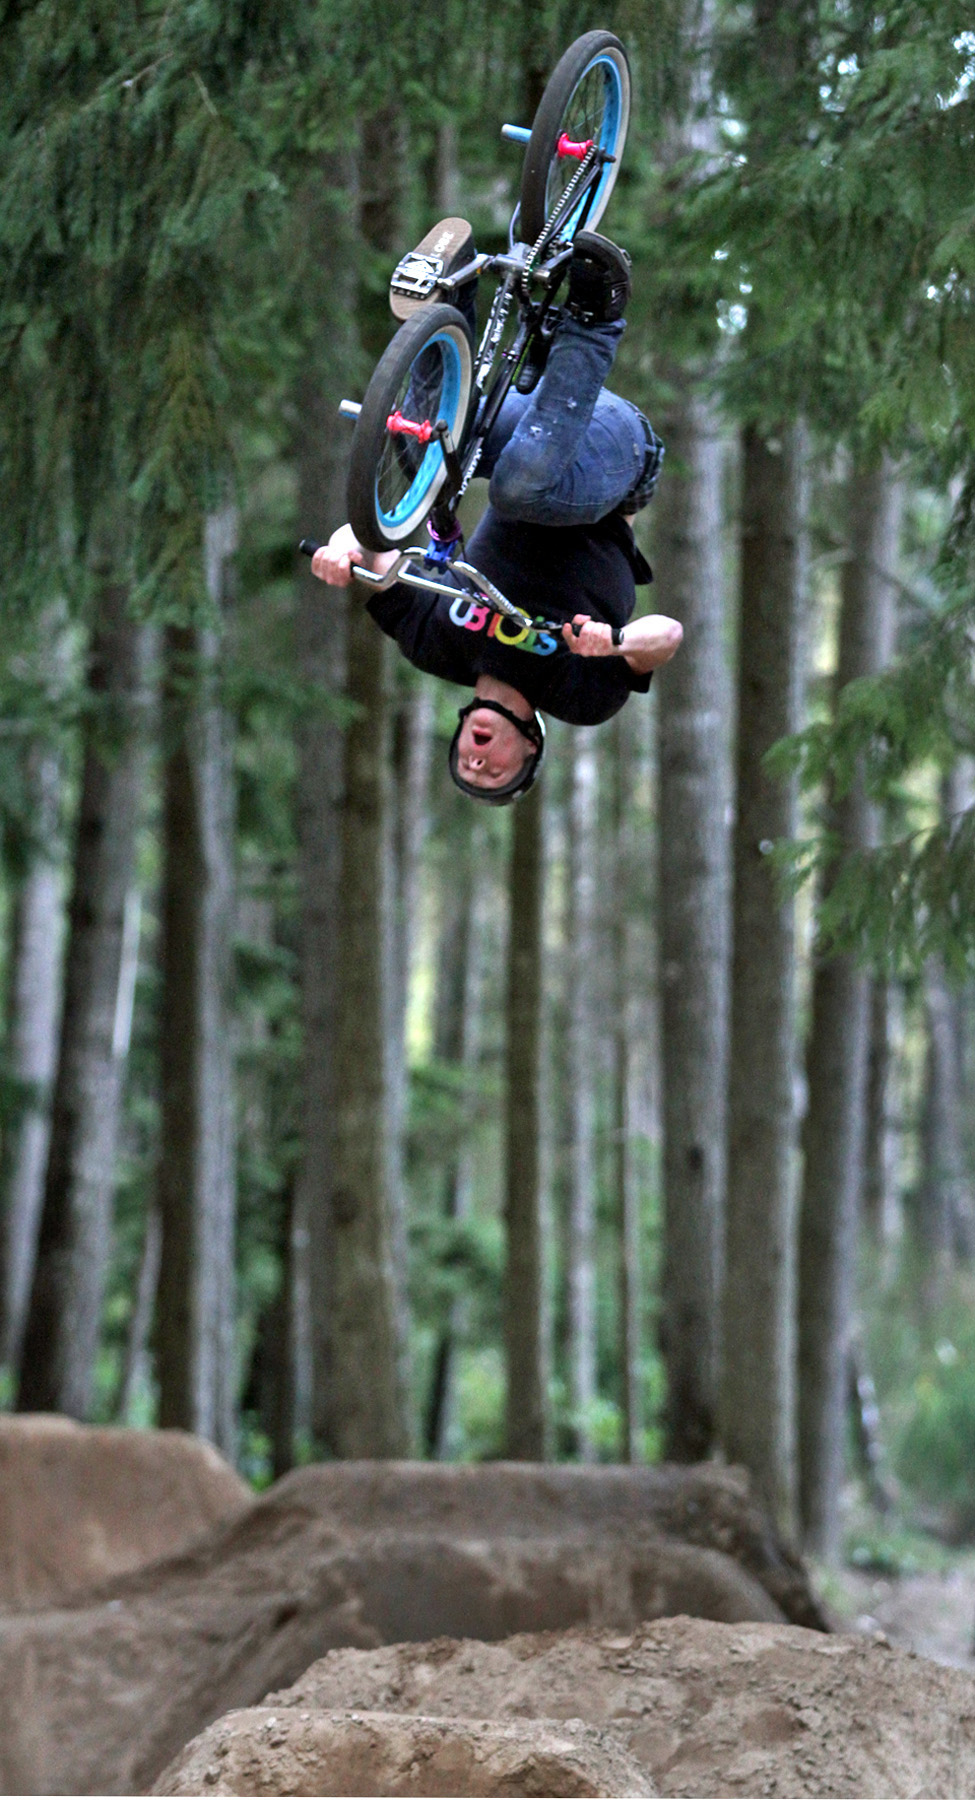 Olympic cycle port orchard - Speaking Of Bmx Bikes